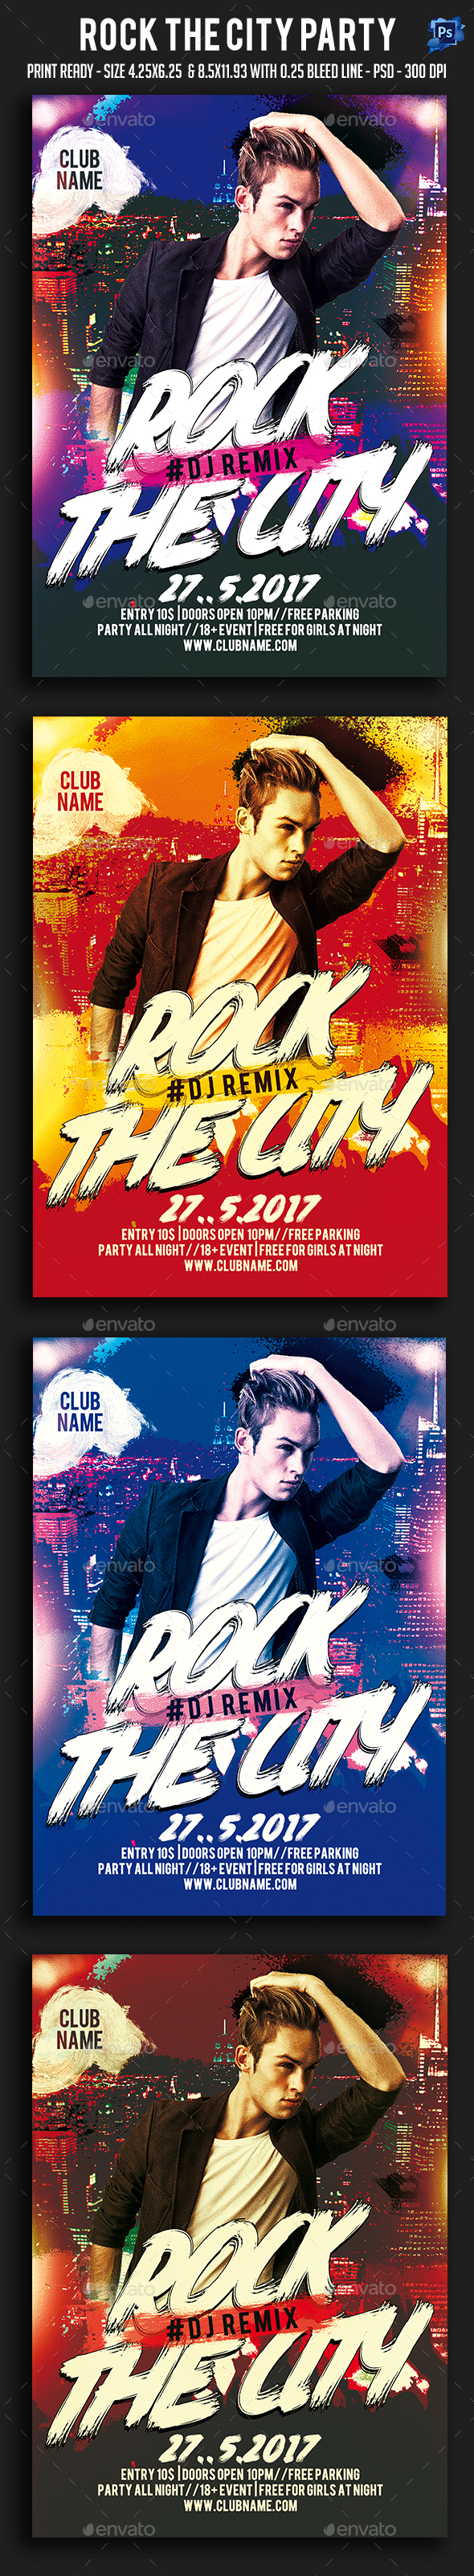 Rock The City Party Flyer - Clubs & Parties Events